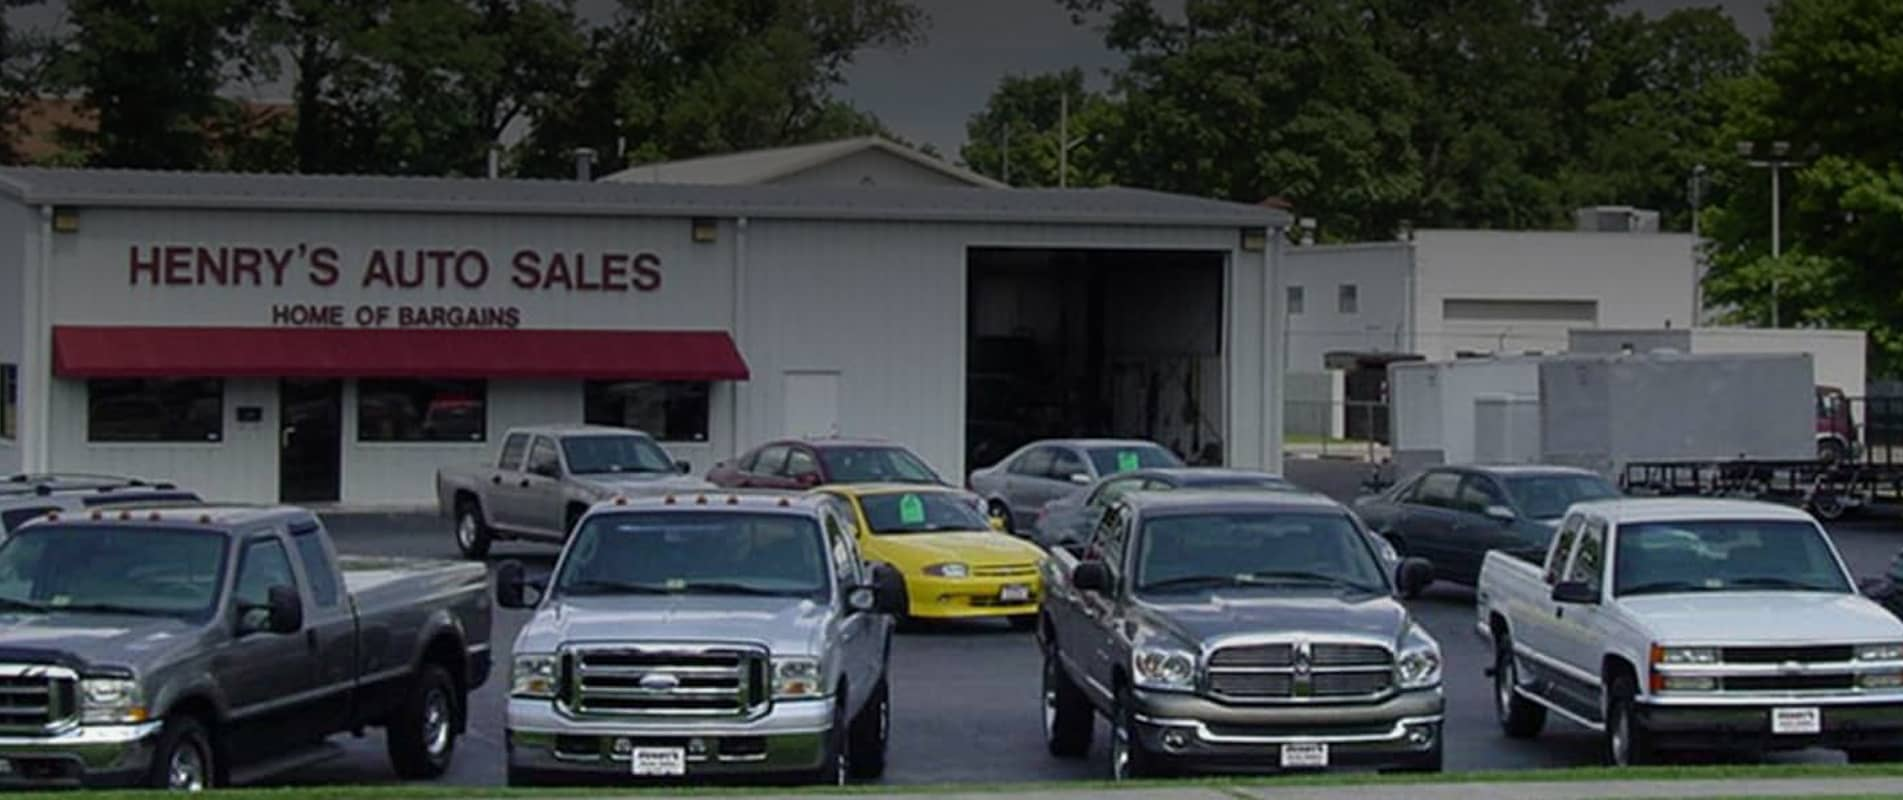 Henrys Auto and Trailer Sales Roanoke VA, Home of Bargains!